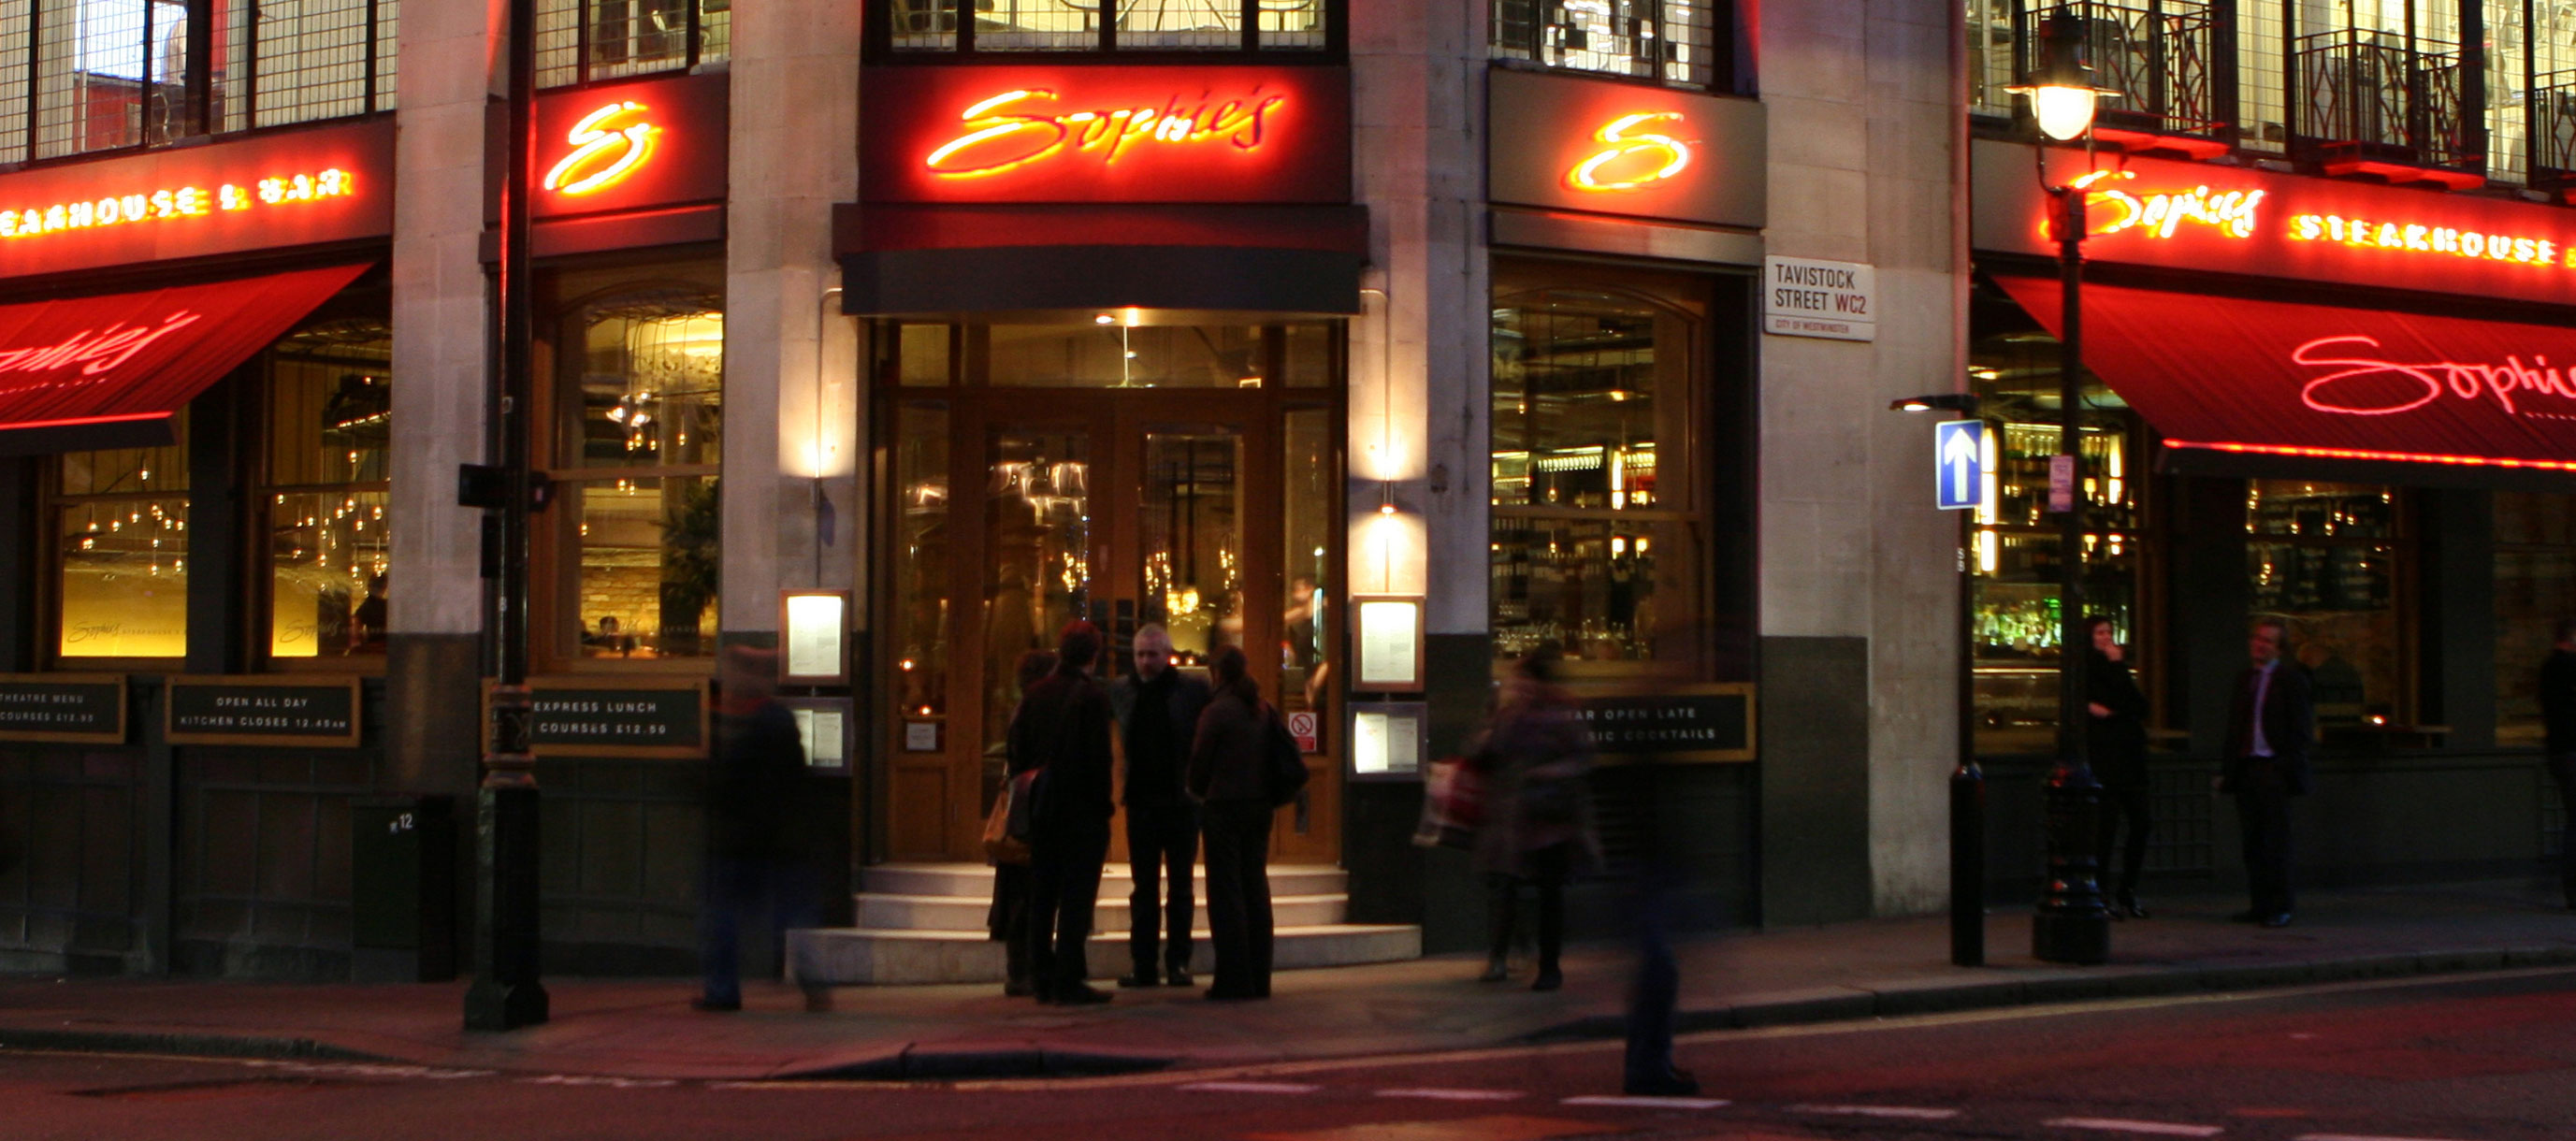 Sophie's Steakhouse and Bar - Covent Garden - London